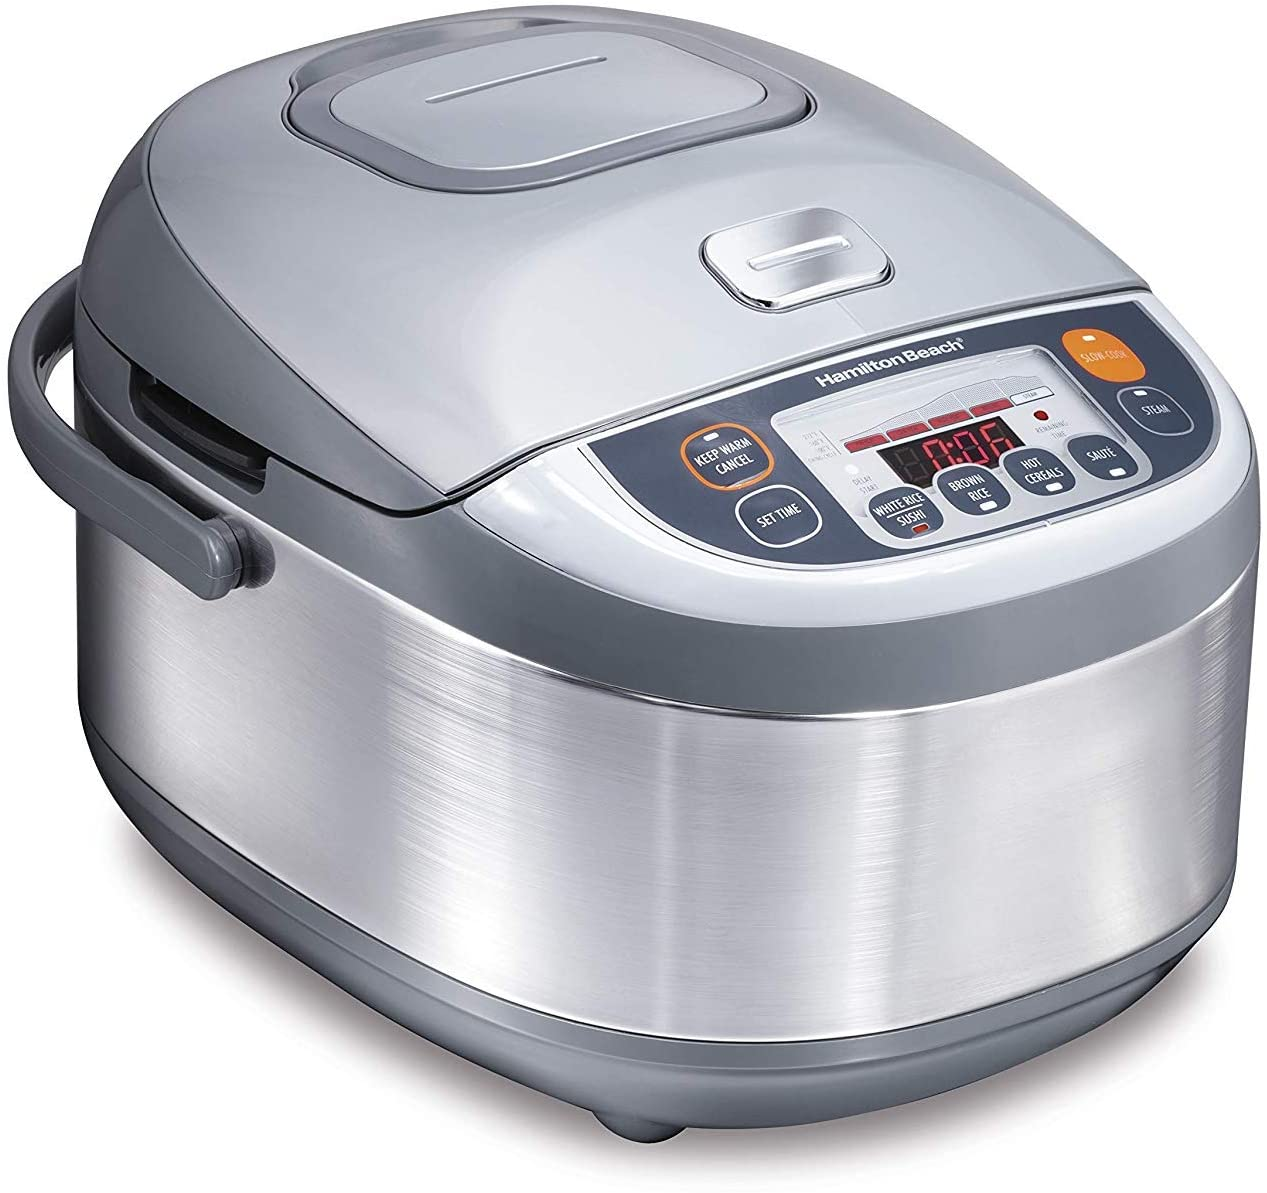 Hamilton Beach Advanced Multi-Function, Fuzzy Logic Rice Cooker & Food Steamer, 16 Cups Cooked (8 Uncooked), Digital & Programmable, Stainless Steel (37570)